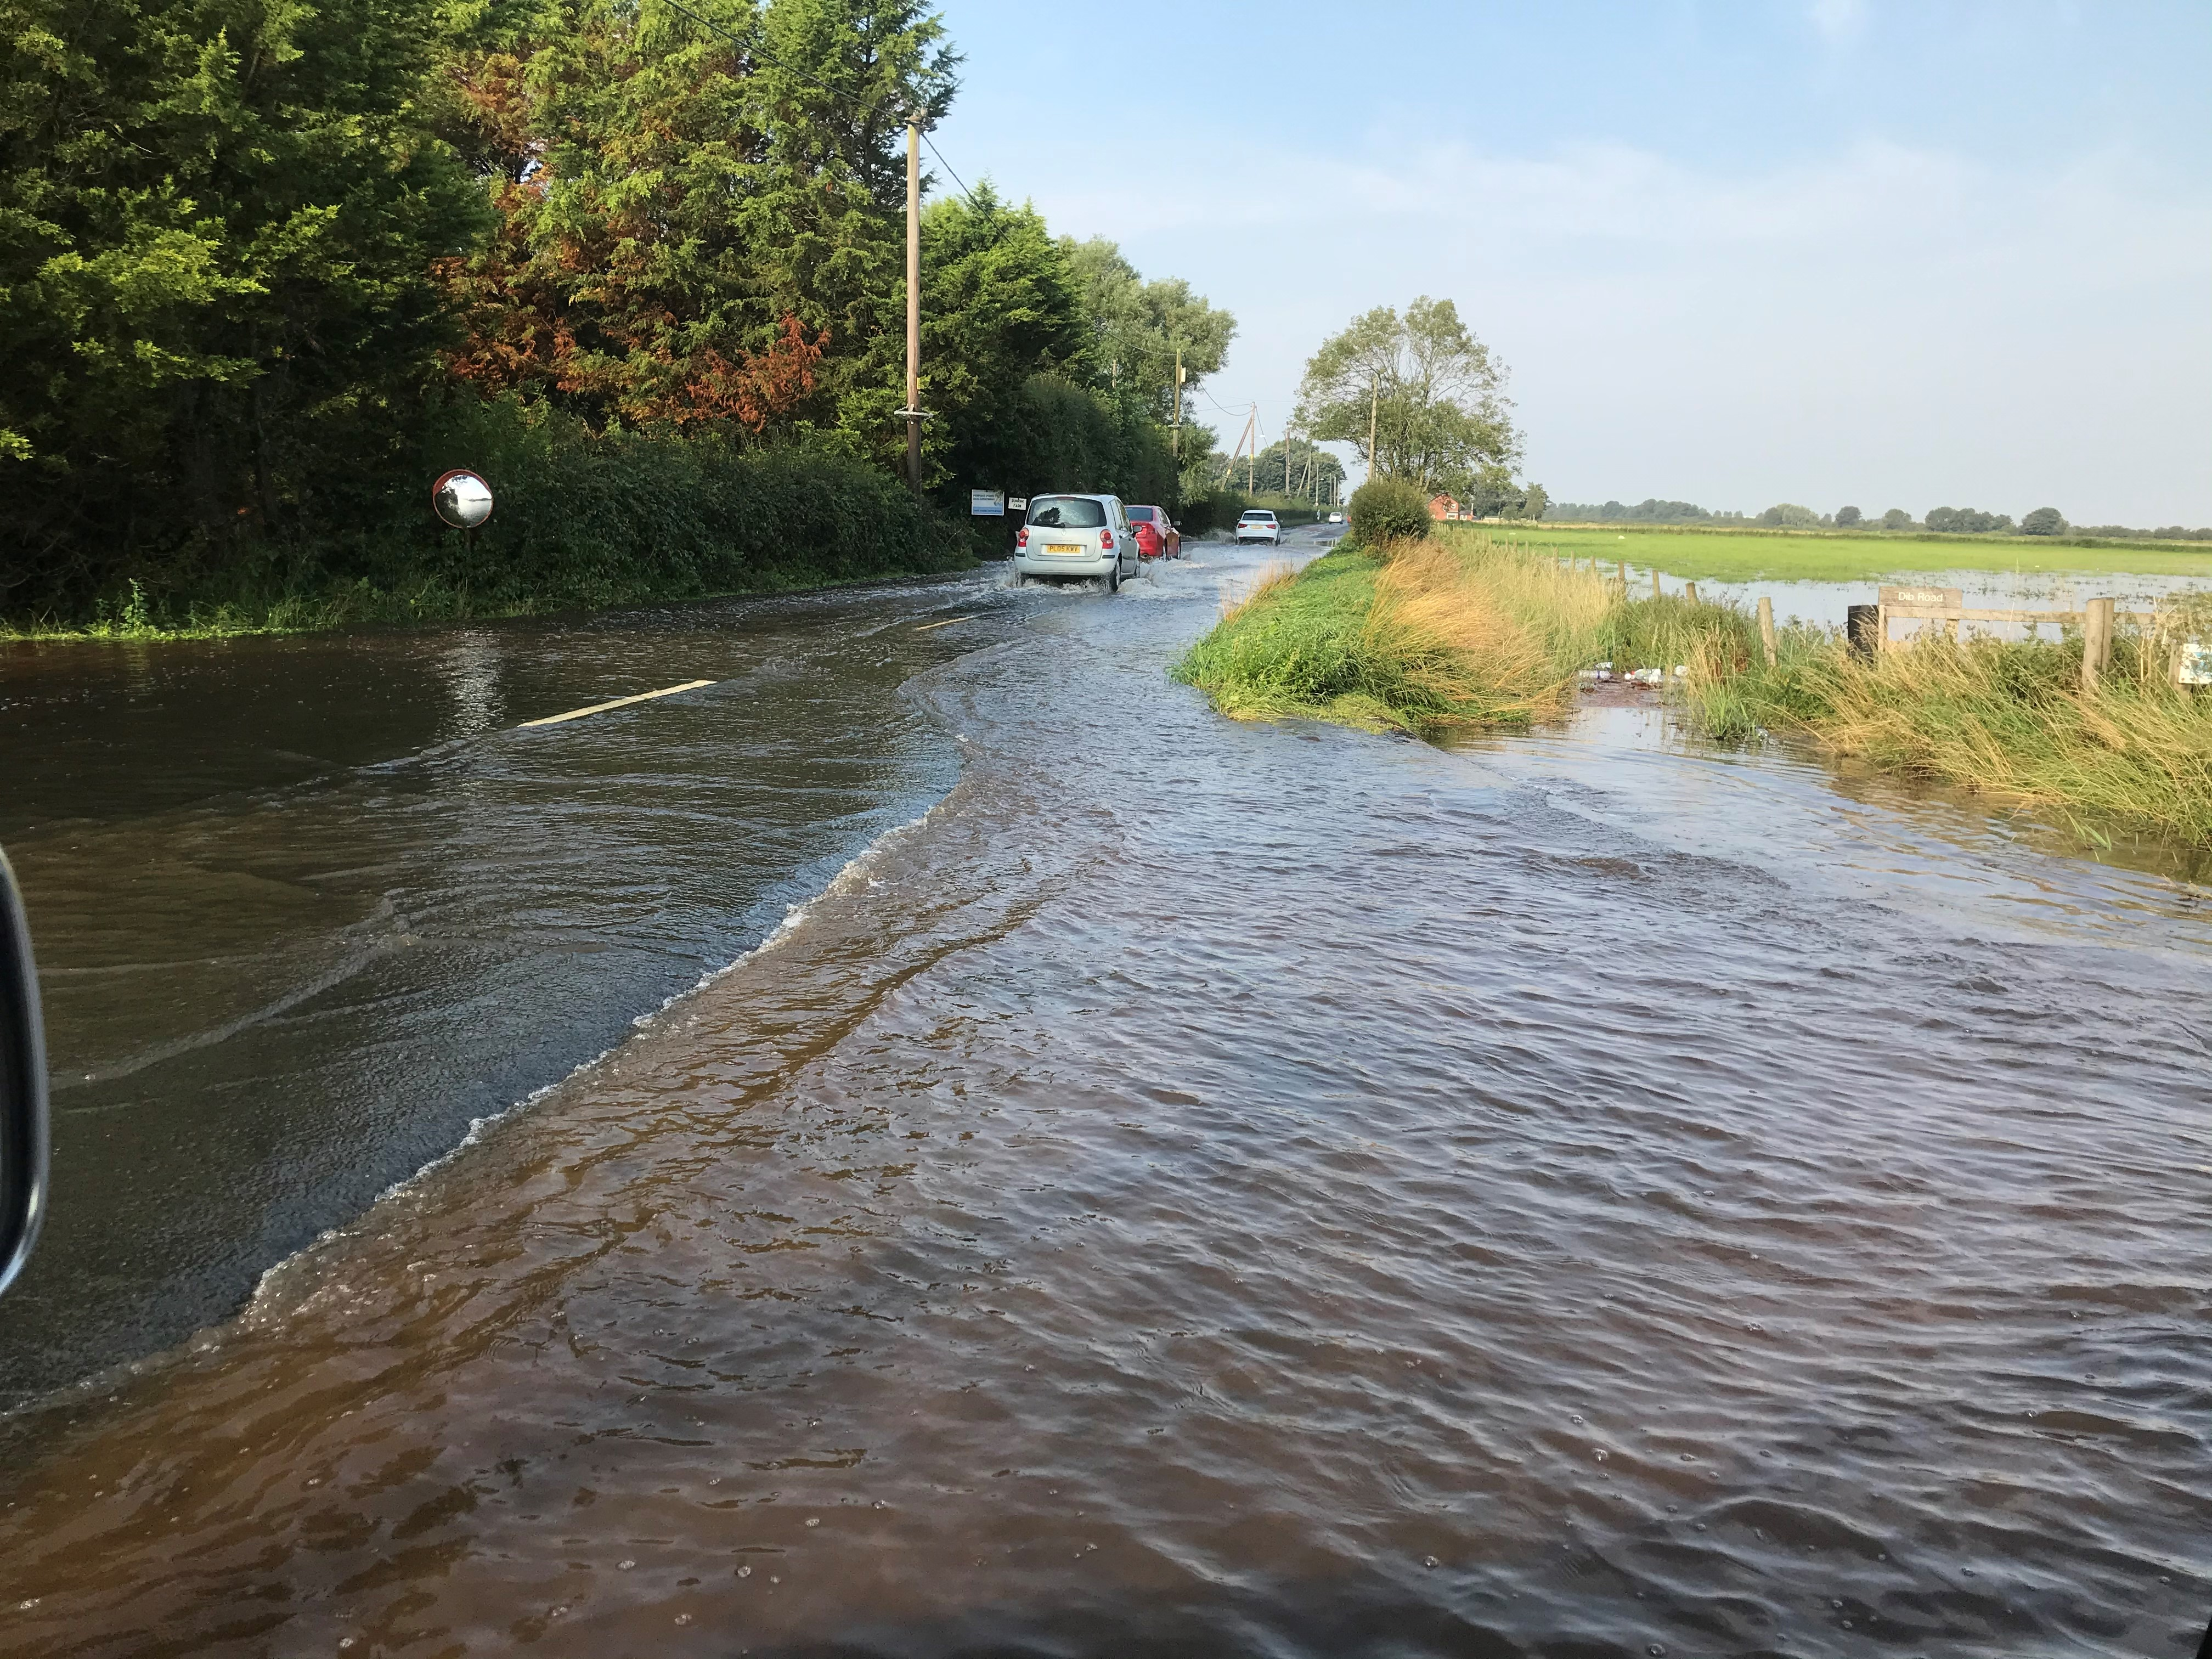 Flooding could get even worse if pumps are taken away, claims MP